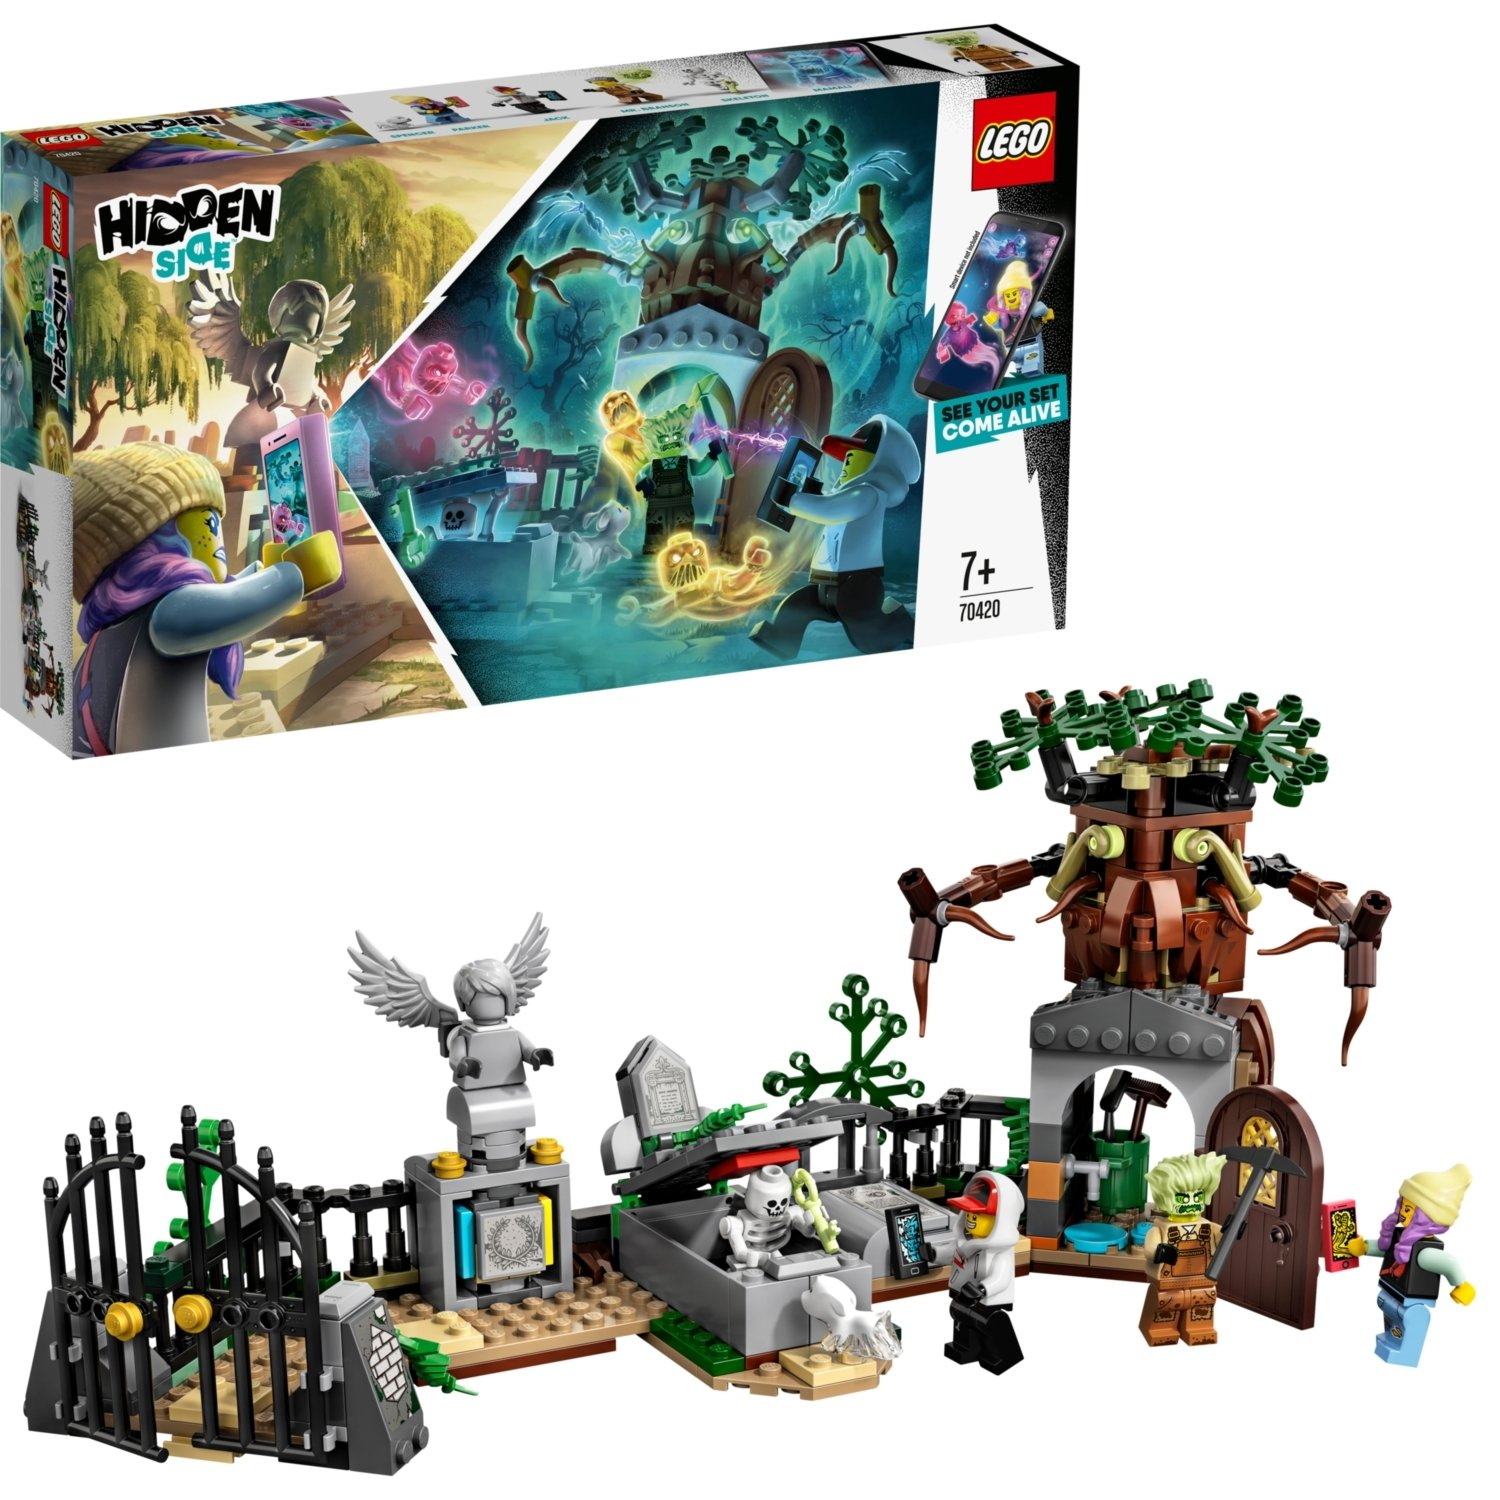 LEGO Hidden Side Graveyard Mystery AR Lego Games Set 70420